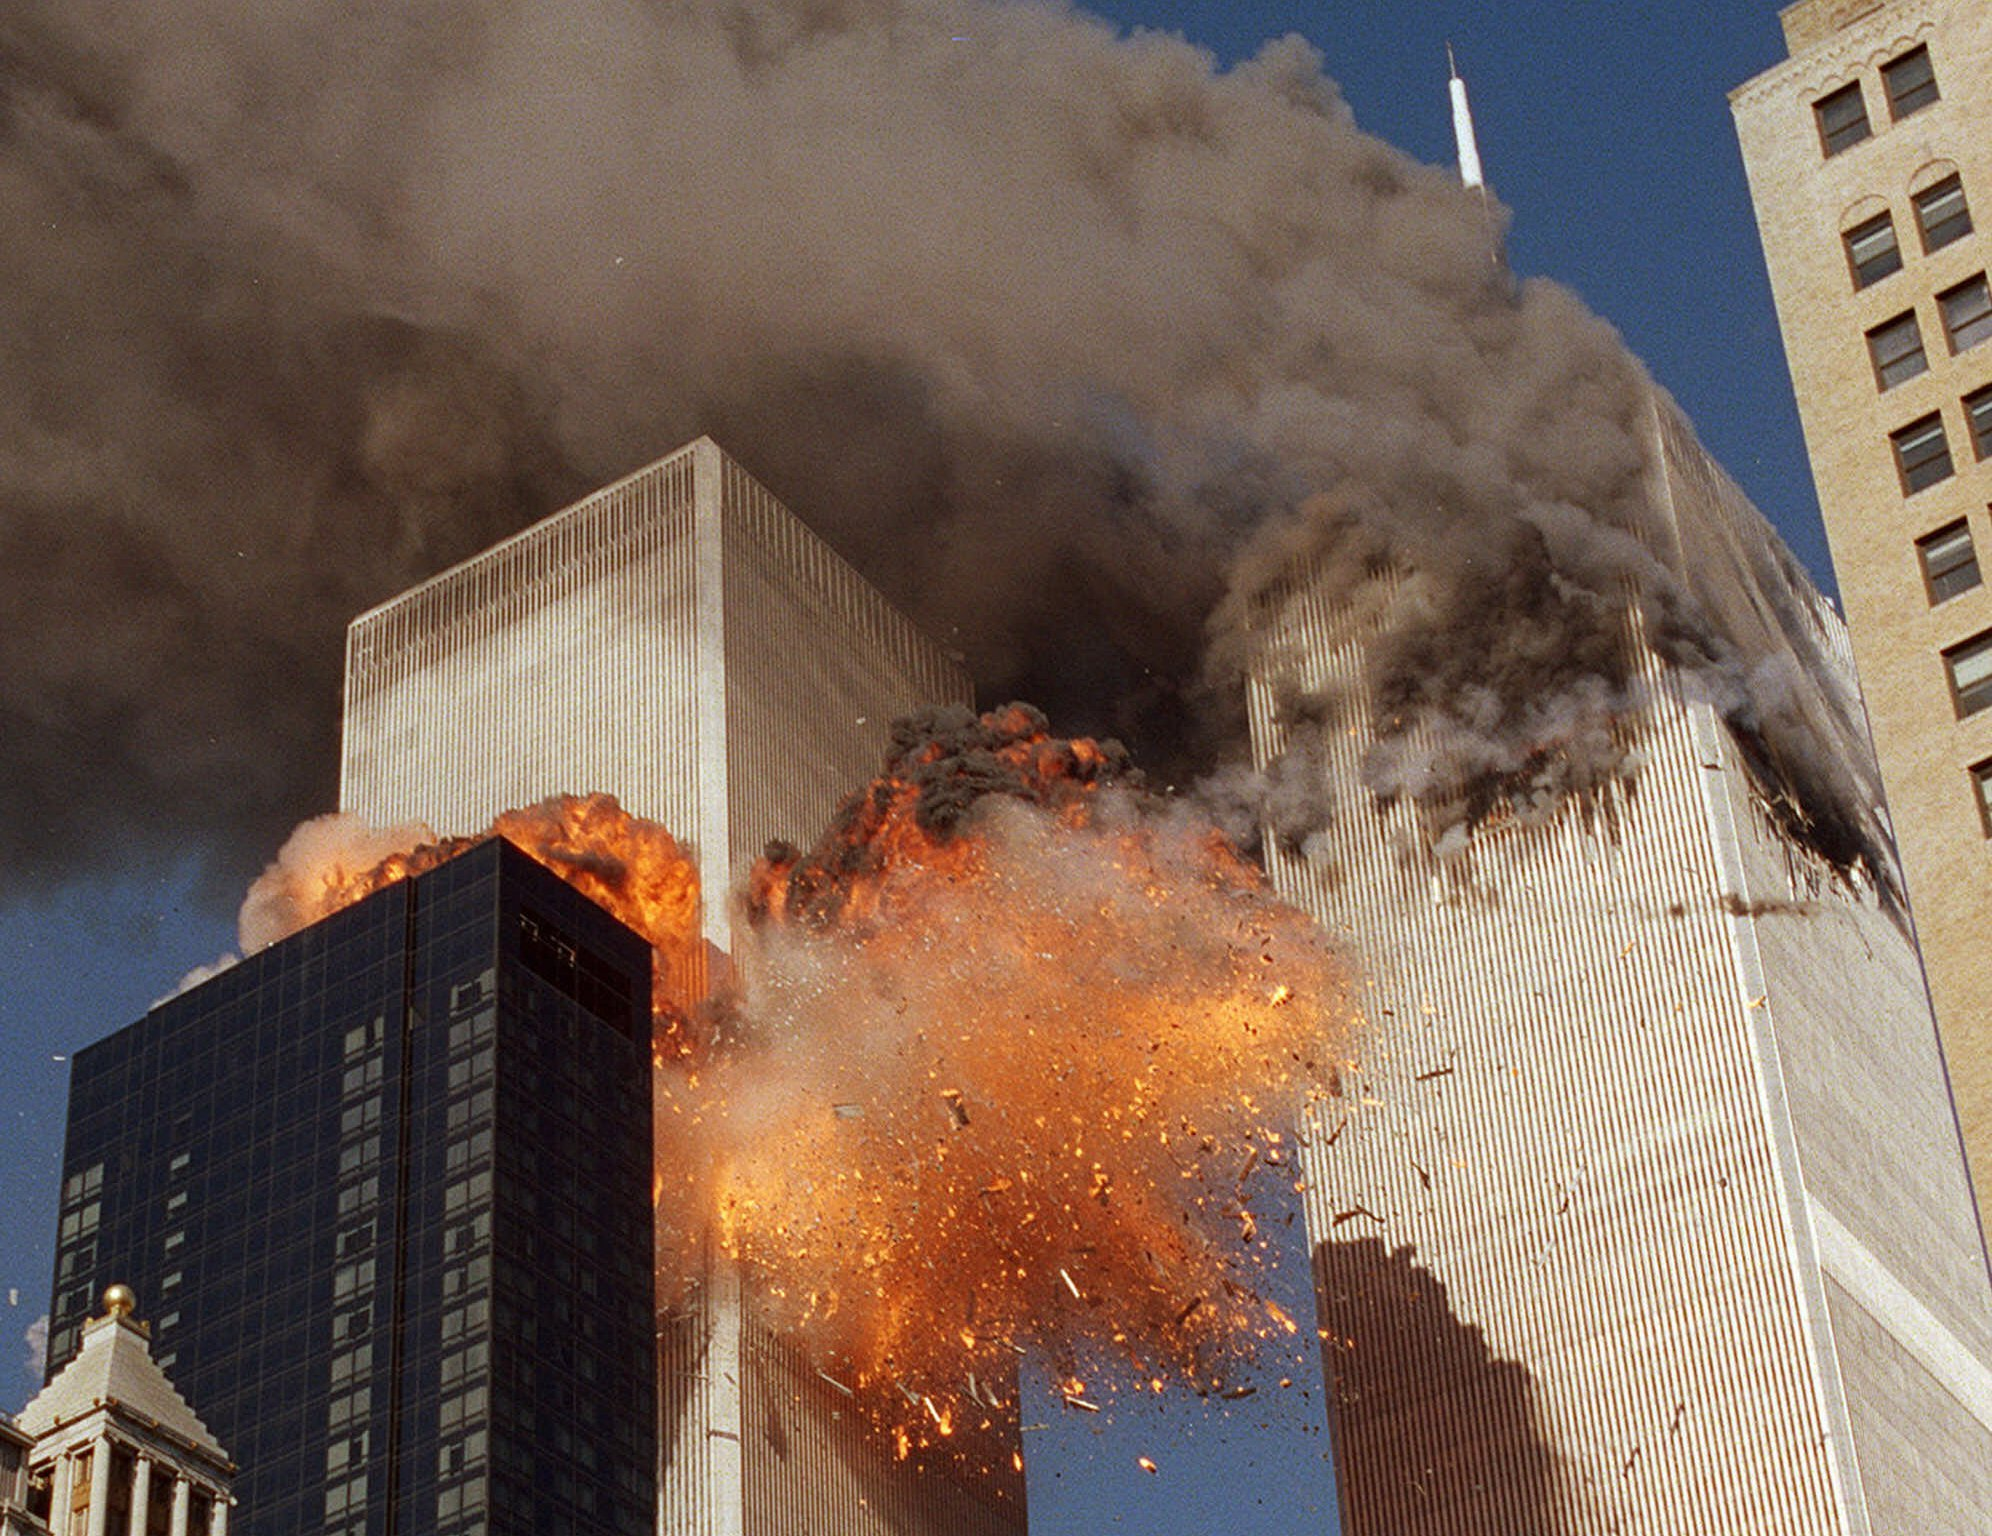 Students Chilling Private Footage Of 9/11 Attacks Goes Viral Again PA 3913821